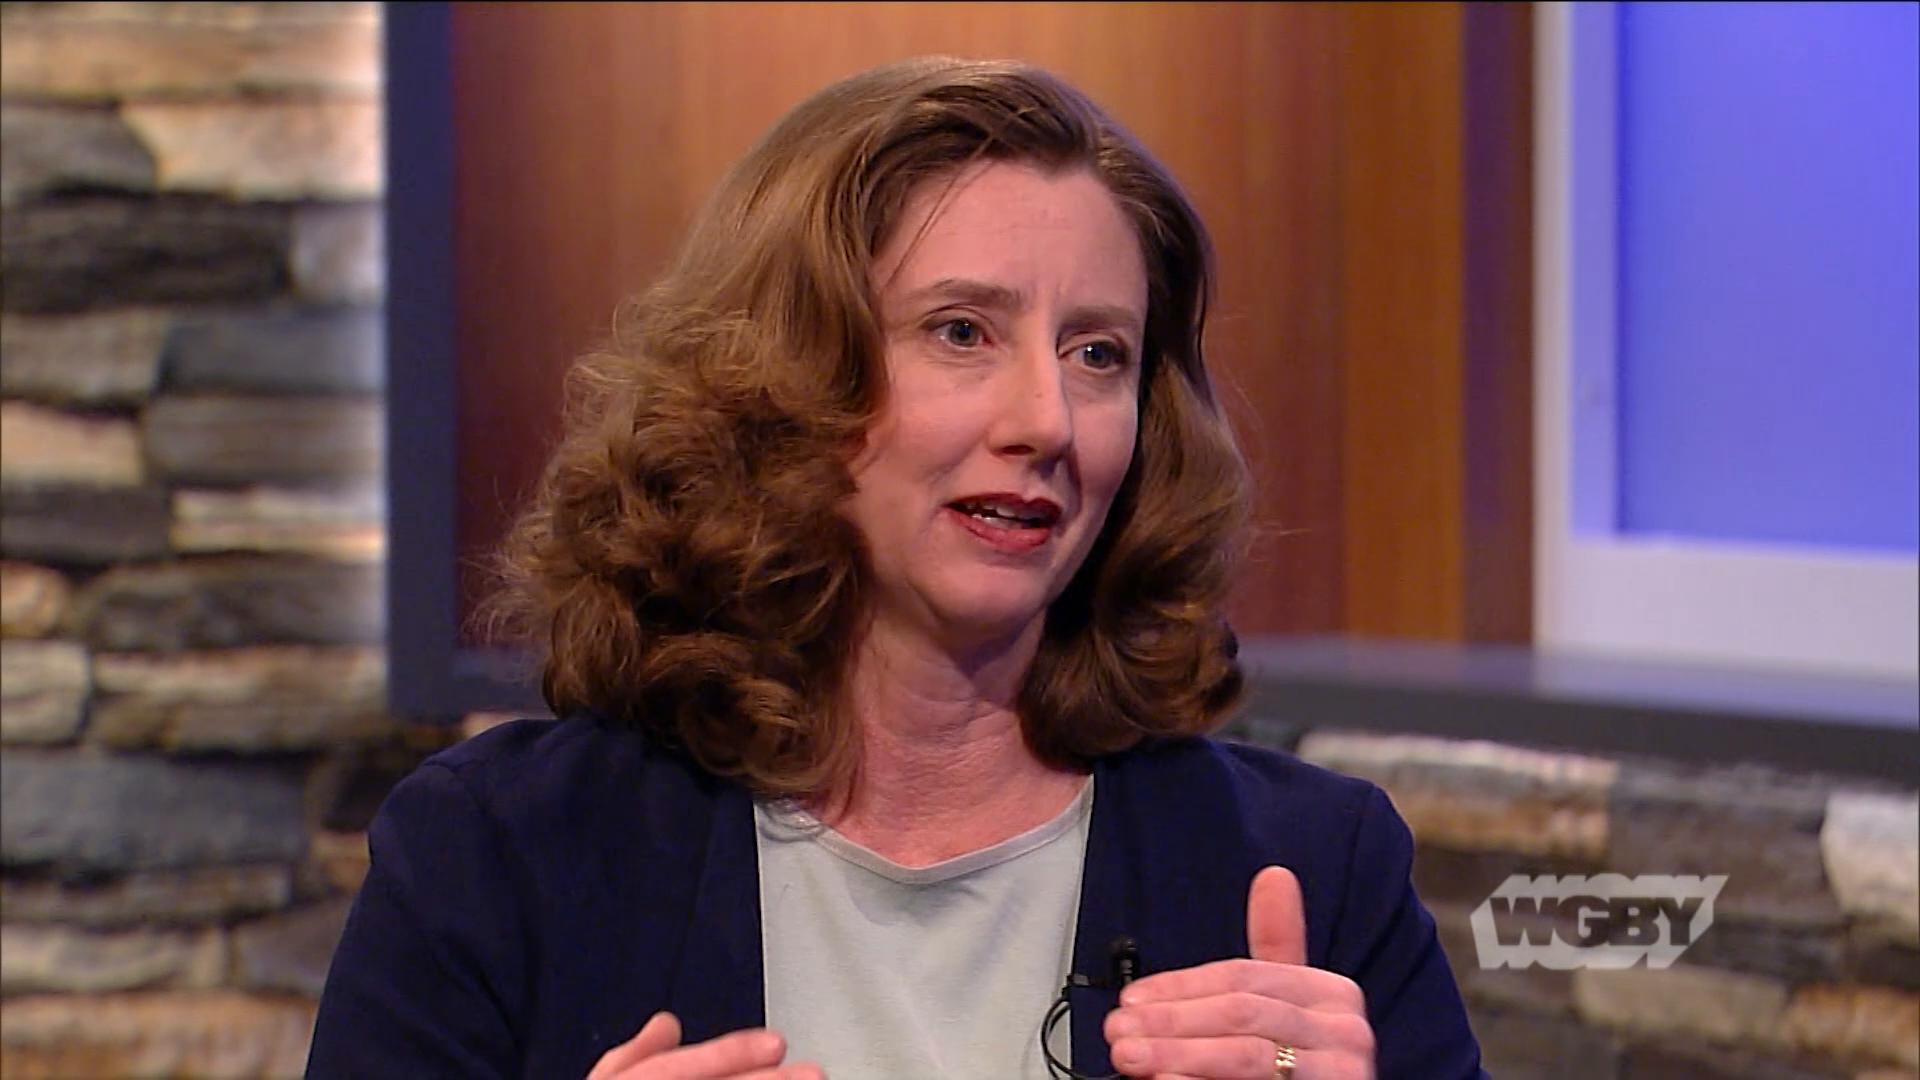 WATCH: University of Hartford Professor Rebecca Townsend weighs in on the role of political endorsements in modern politics.